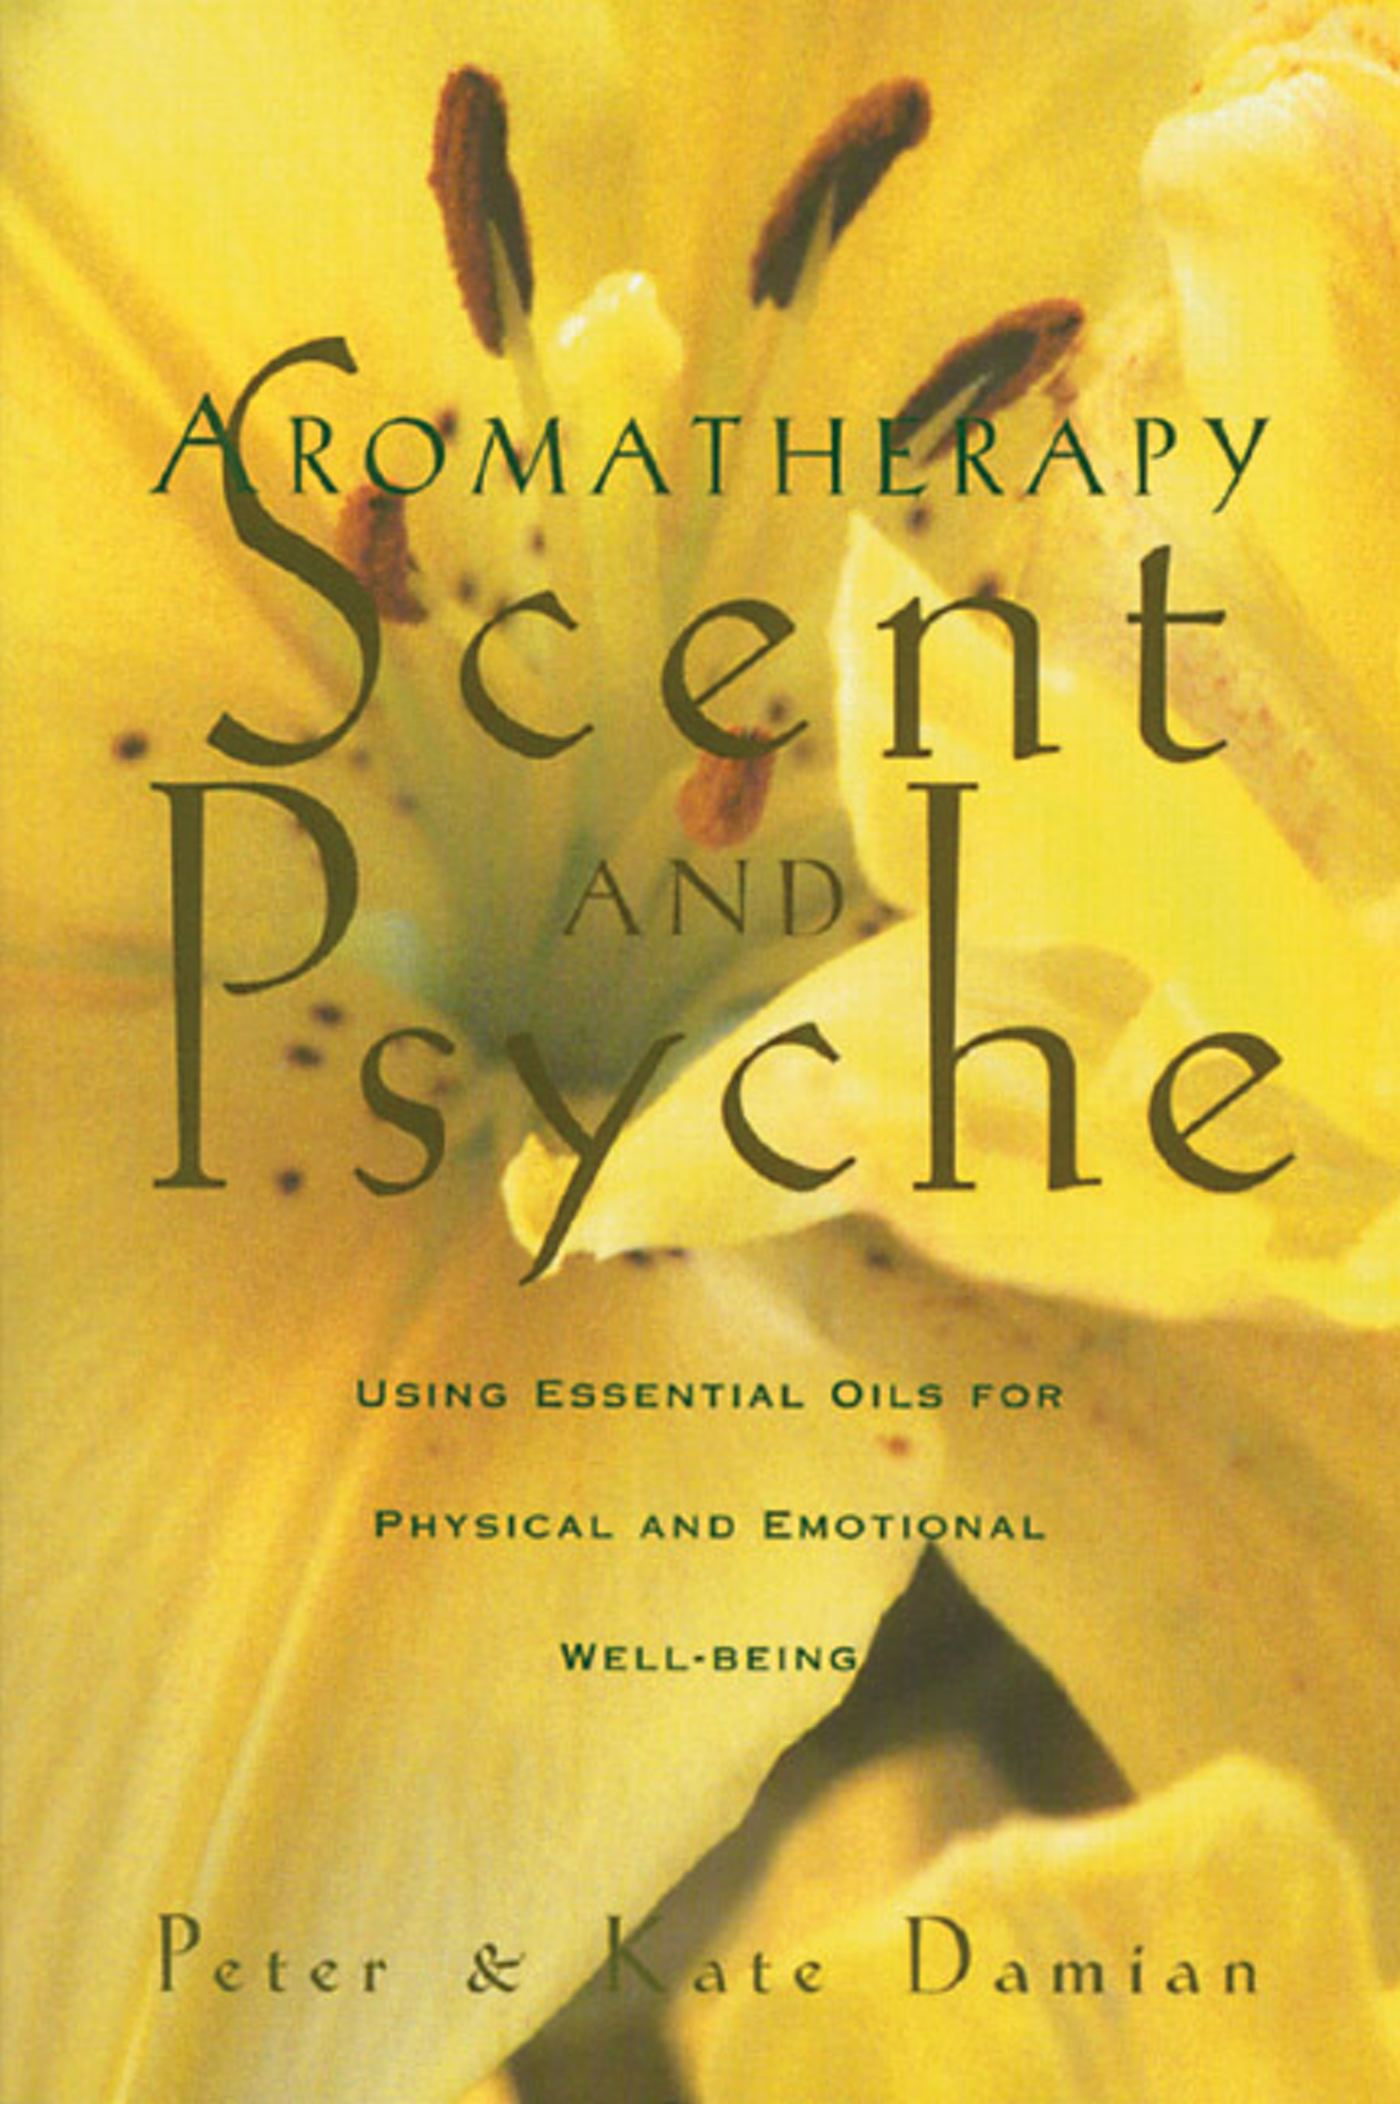 Aromatherapy scent and psyche 9780892815302 hr